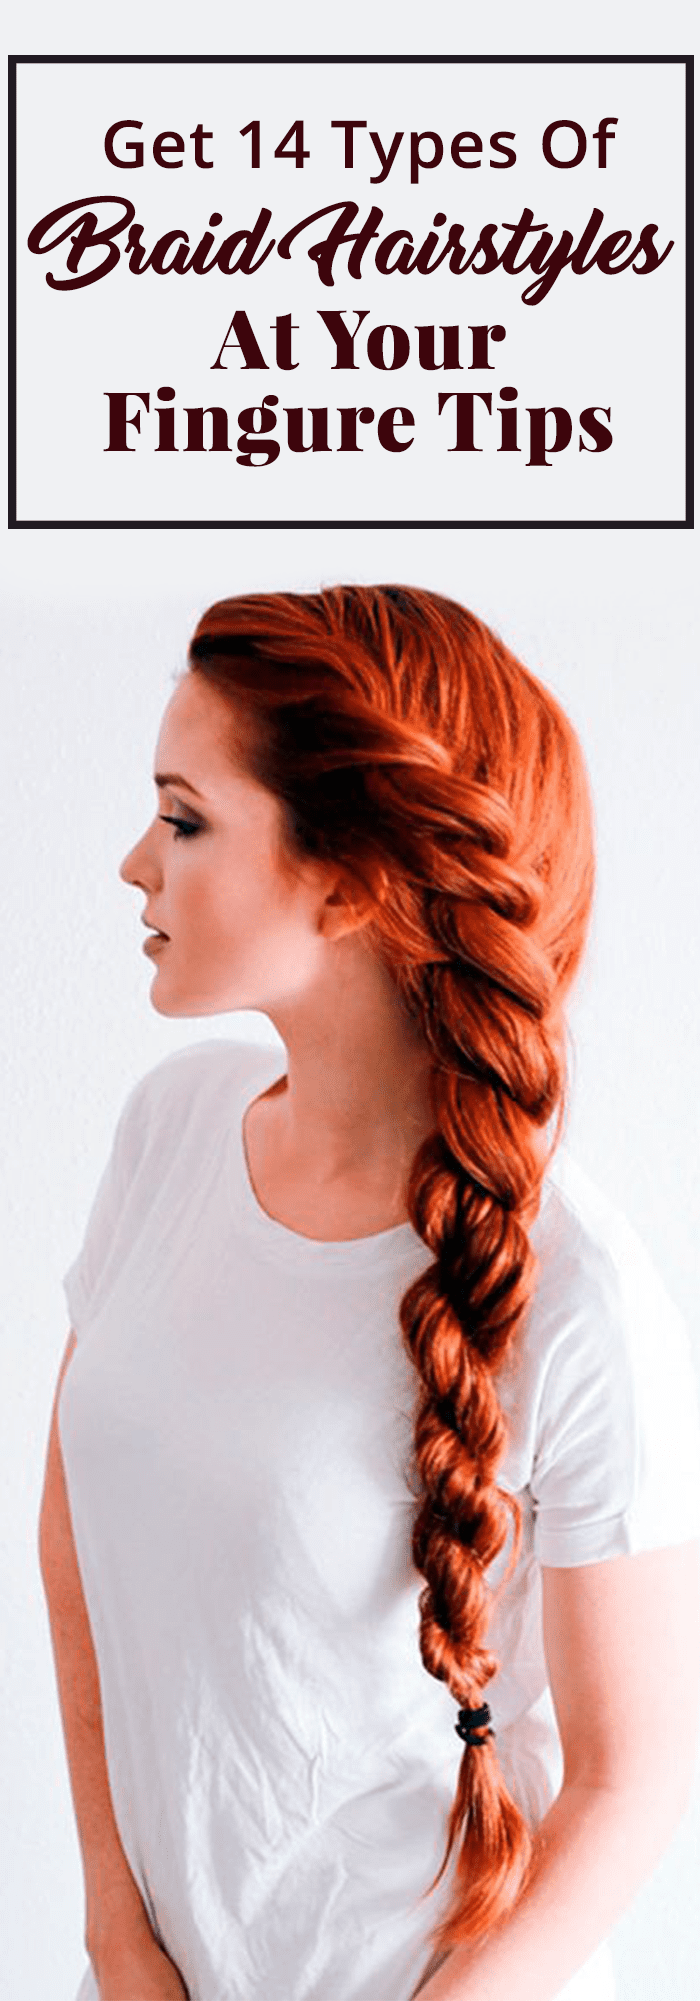 Get 14 Types Of Braid Hairstyles